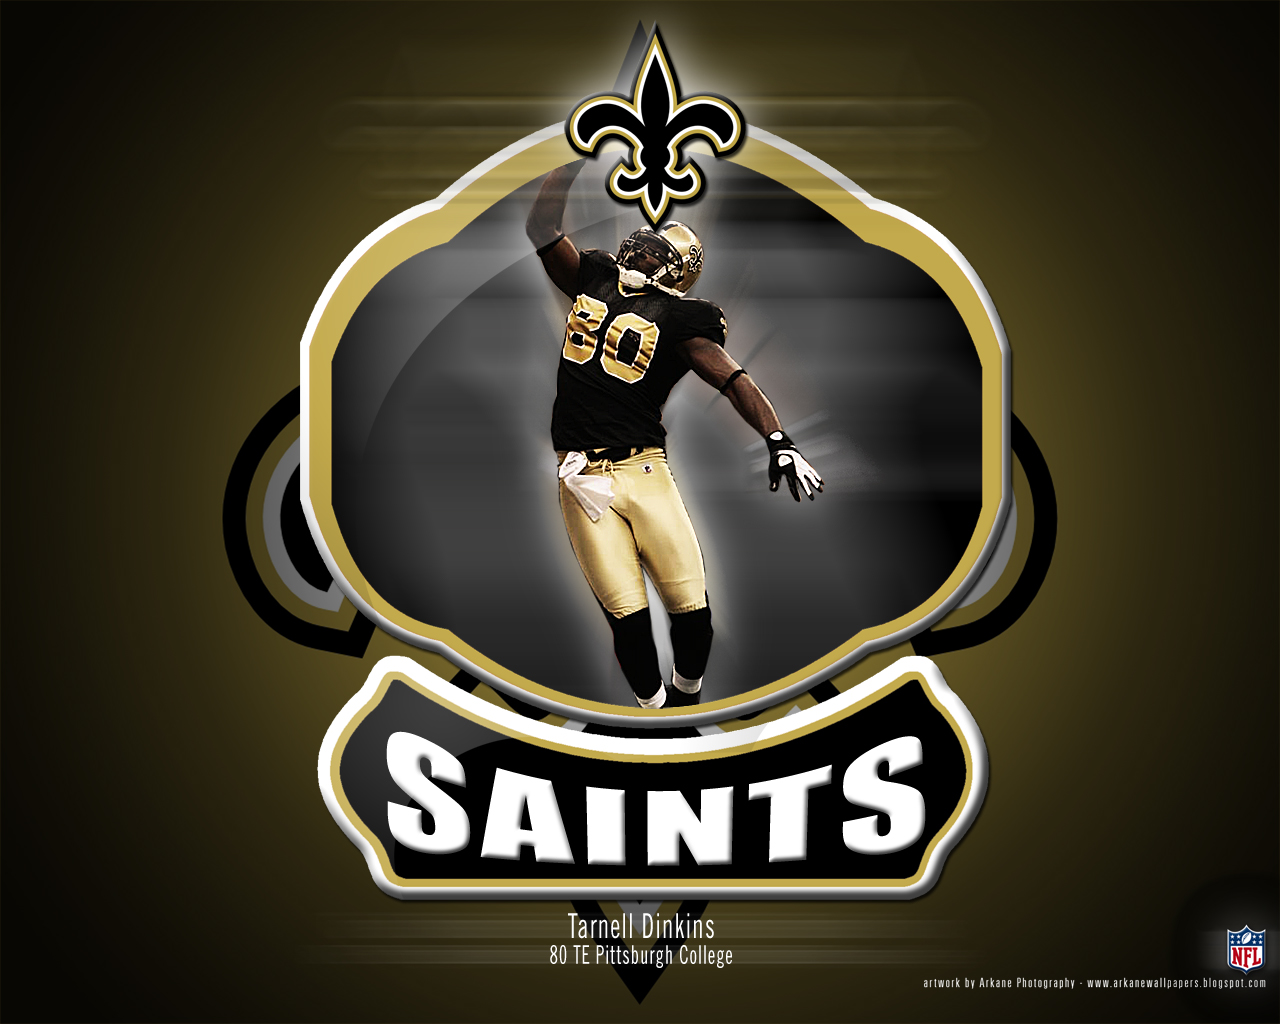 Arkane Nfl Wallpapers Tarnell Dinkins New Orleans Saints